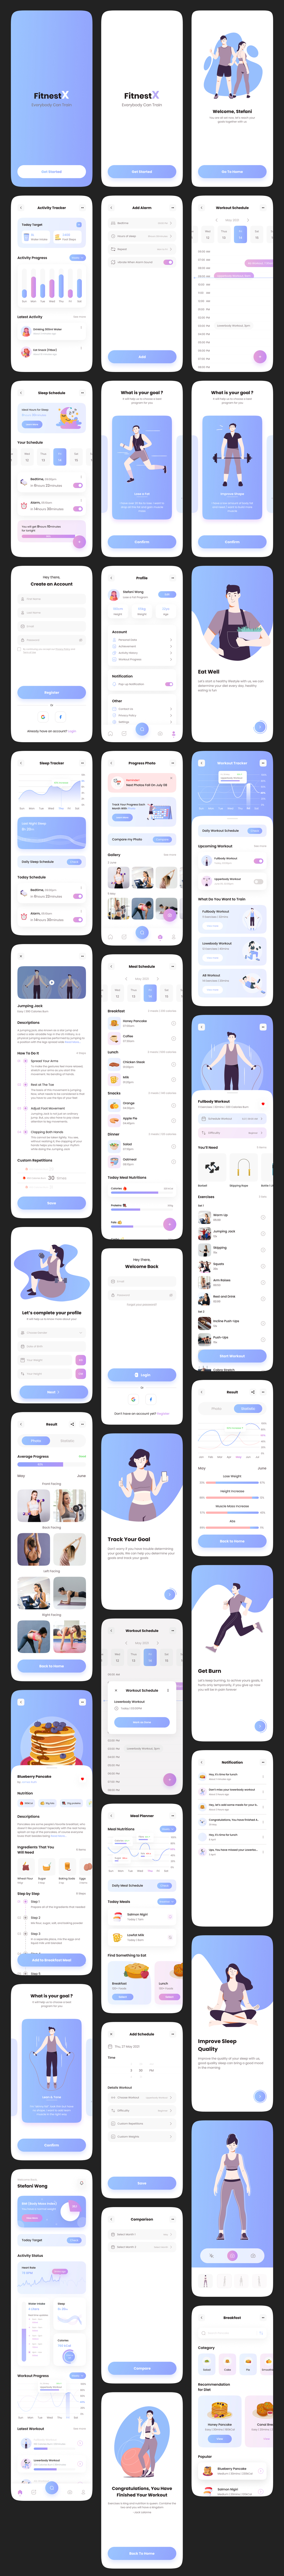 Fitness Free App UI Kit for Figma - It's your 3-in-1 fitness tracker. It helps you track your workout, meal, and sleep - making it easy to see your overall progress.